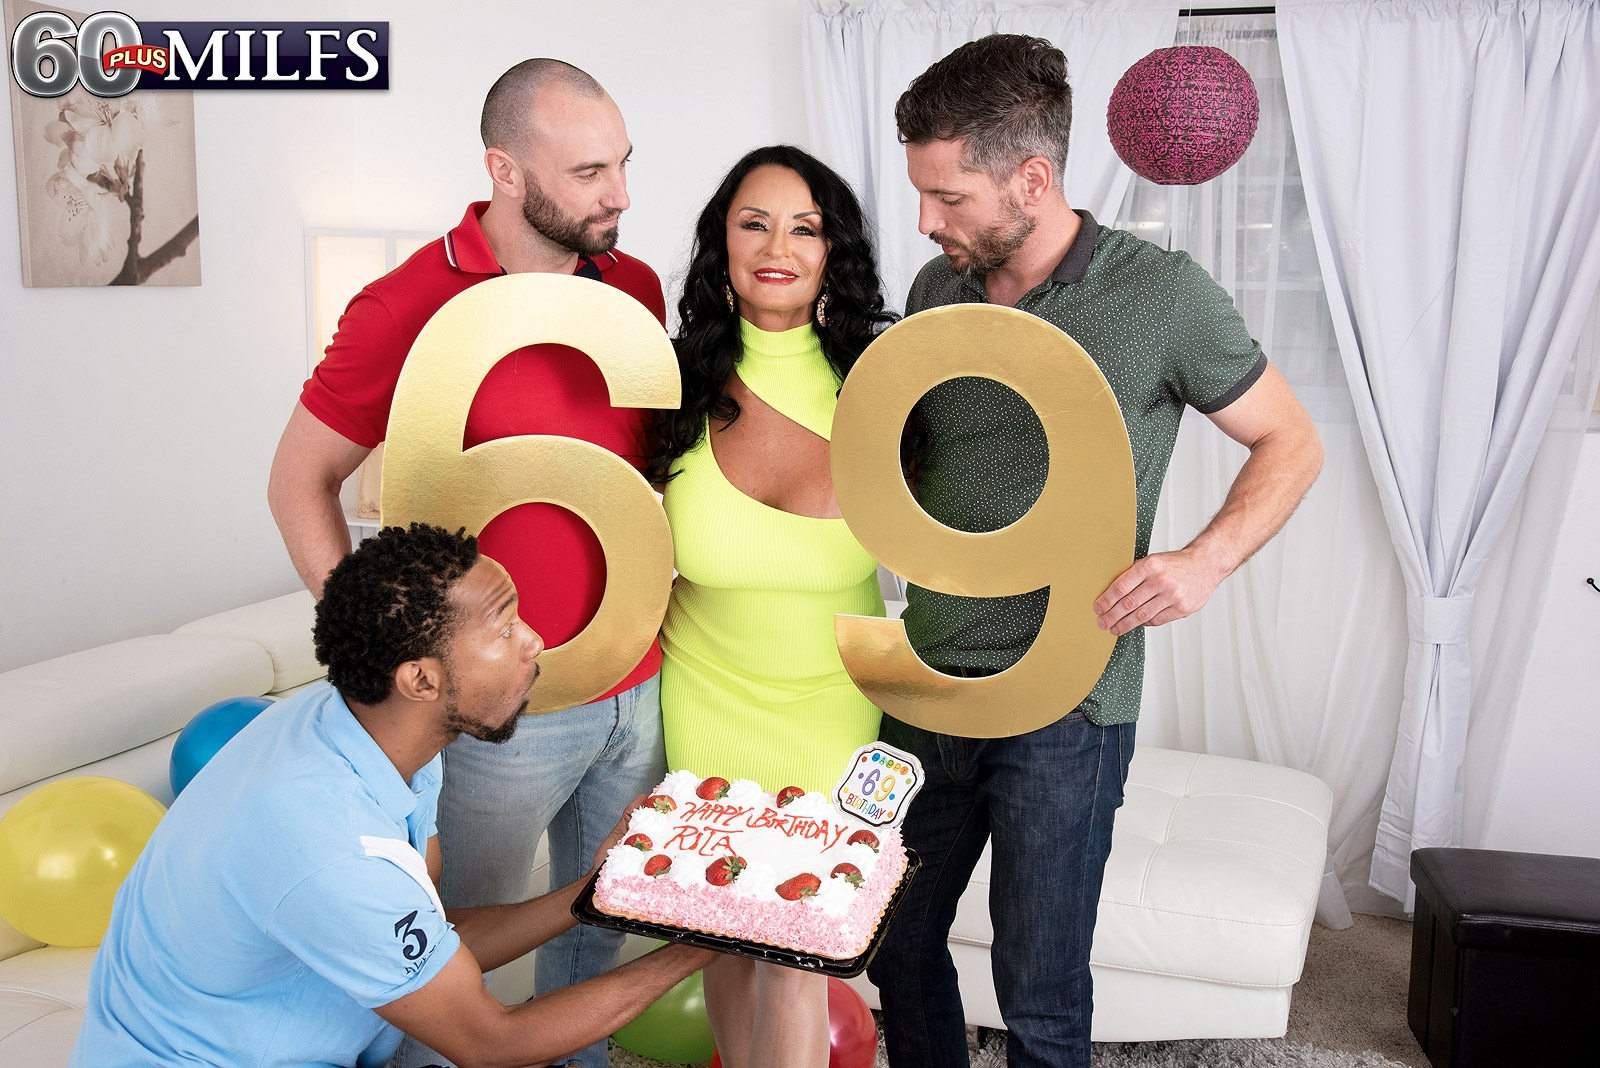 Big-boobed grandmother Rita Daniels gargles on large milky and ebony penises for birthday number sixty nine